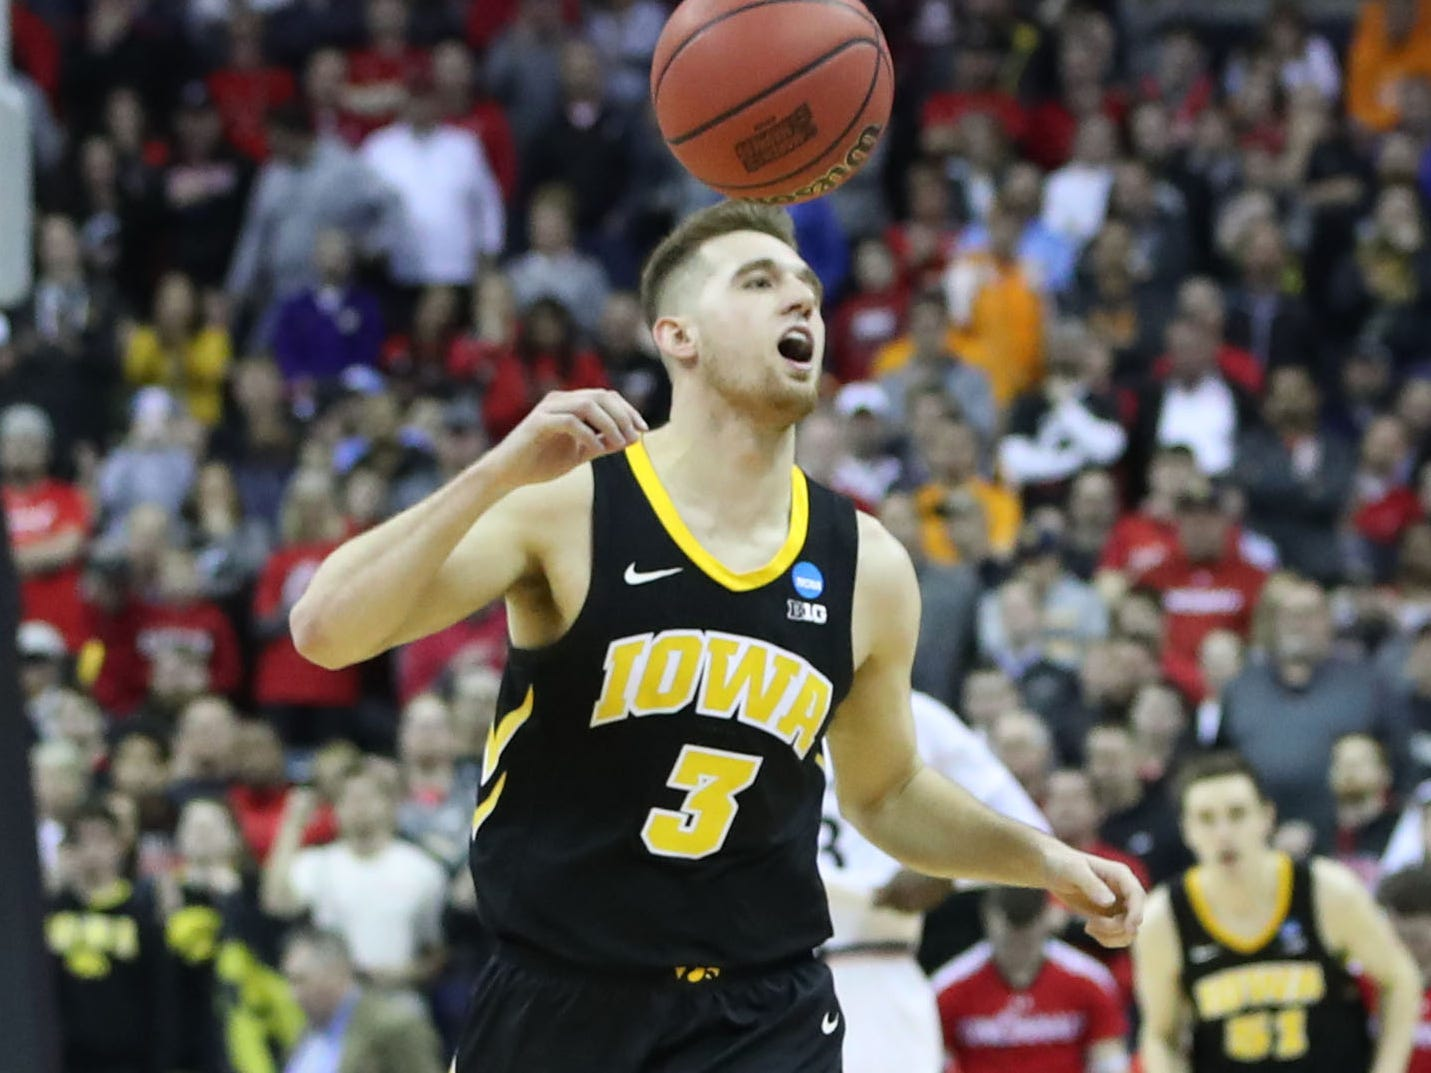 Iowa Hawkeyes guard Jordan Bohannon (3) reacts to defeating Cincinnati Bearcats  in the first round of the 2019 NCAA Tournament at Nationwide Arena on March 22, 2019.